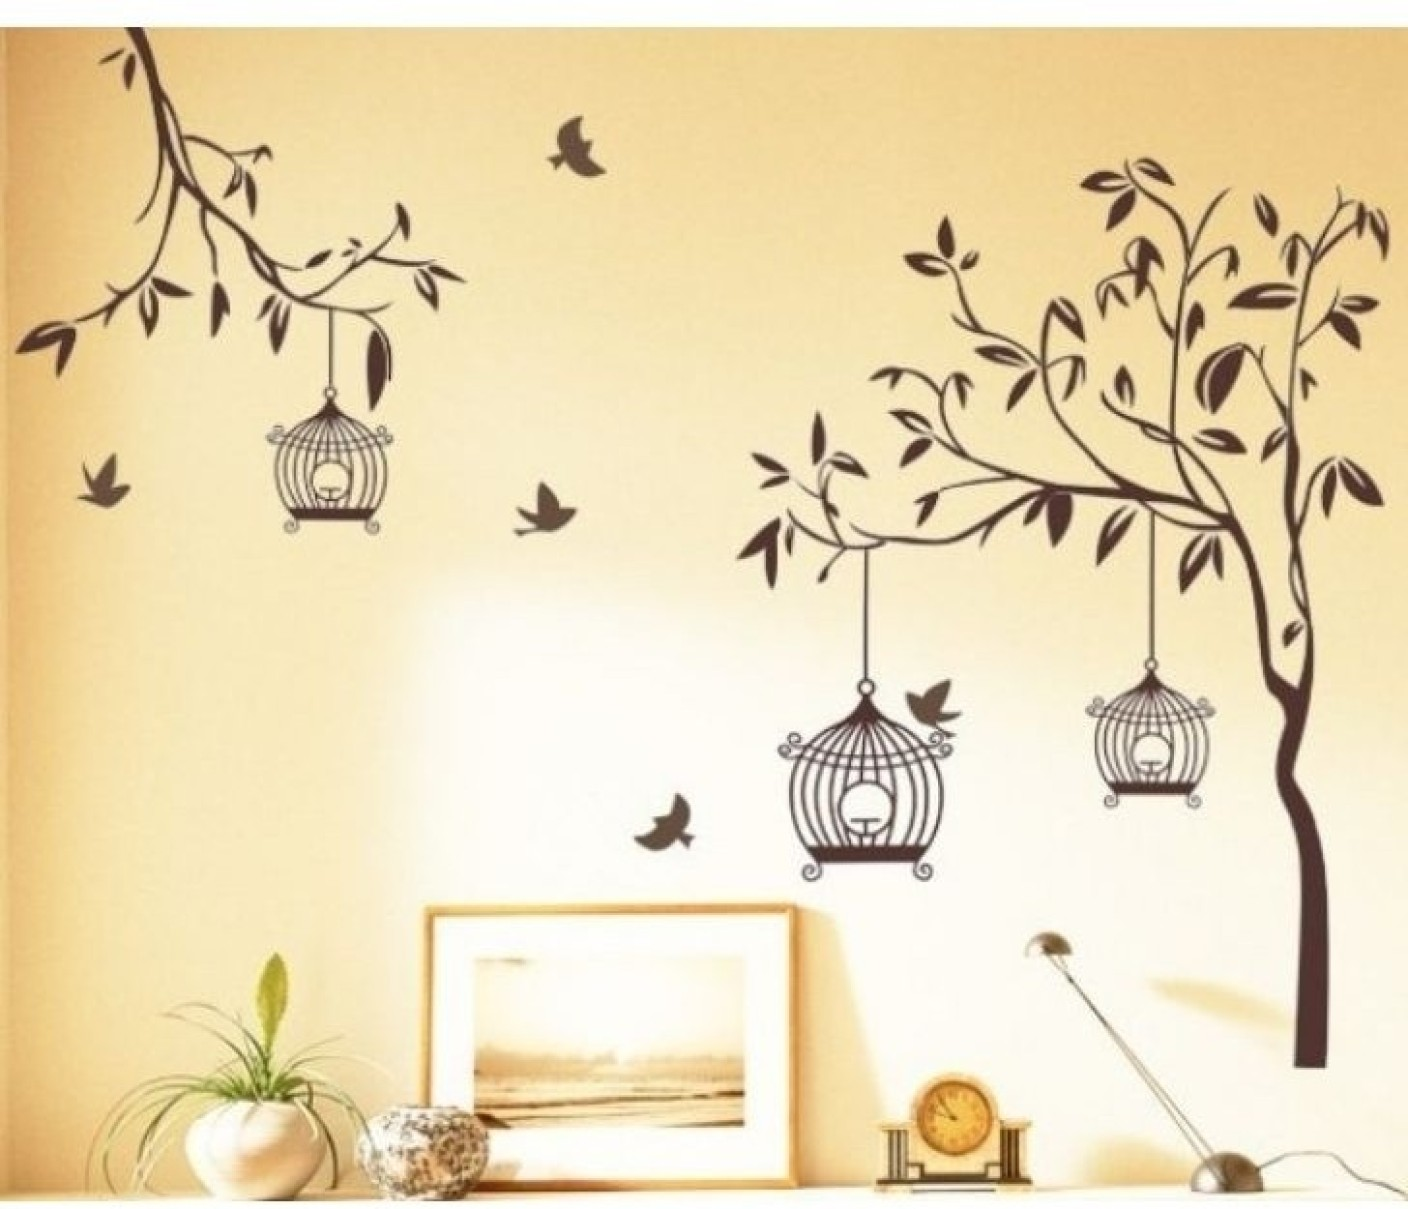 Wall Art Stickers Online - Elitflat